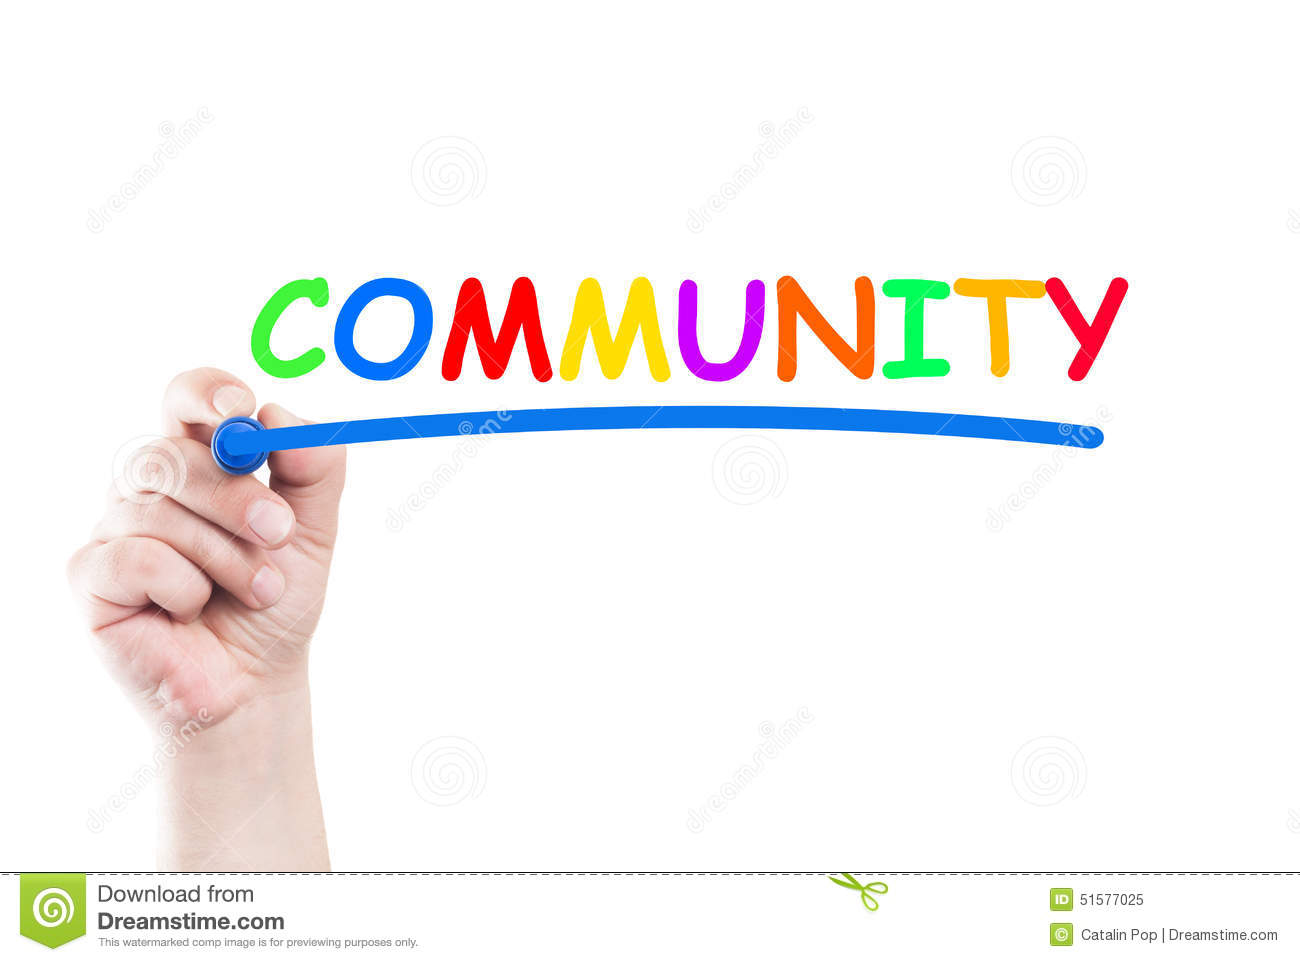 Community Stock Photo - Image: 51577025: www.dreamstime.com/stock-photo-community-word-written-hand-using...